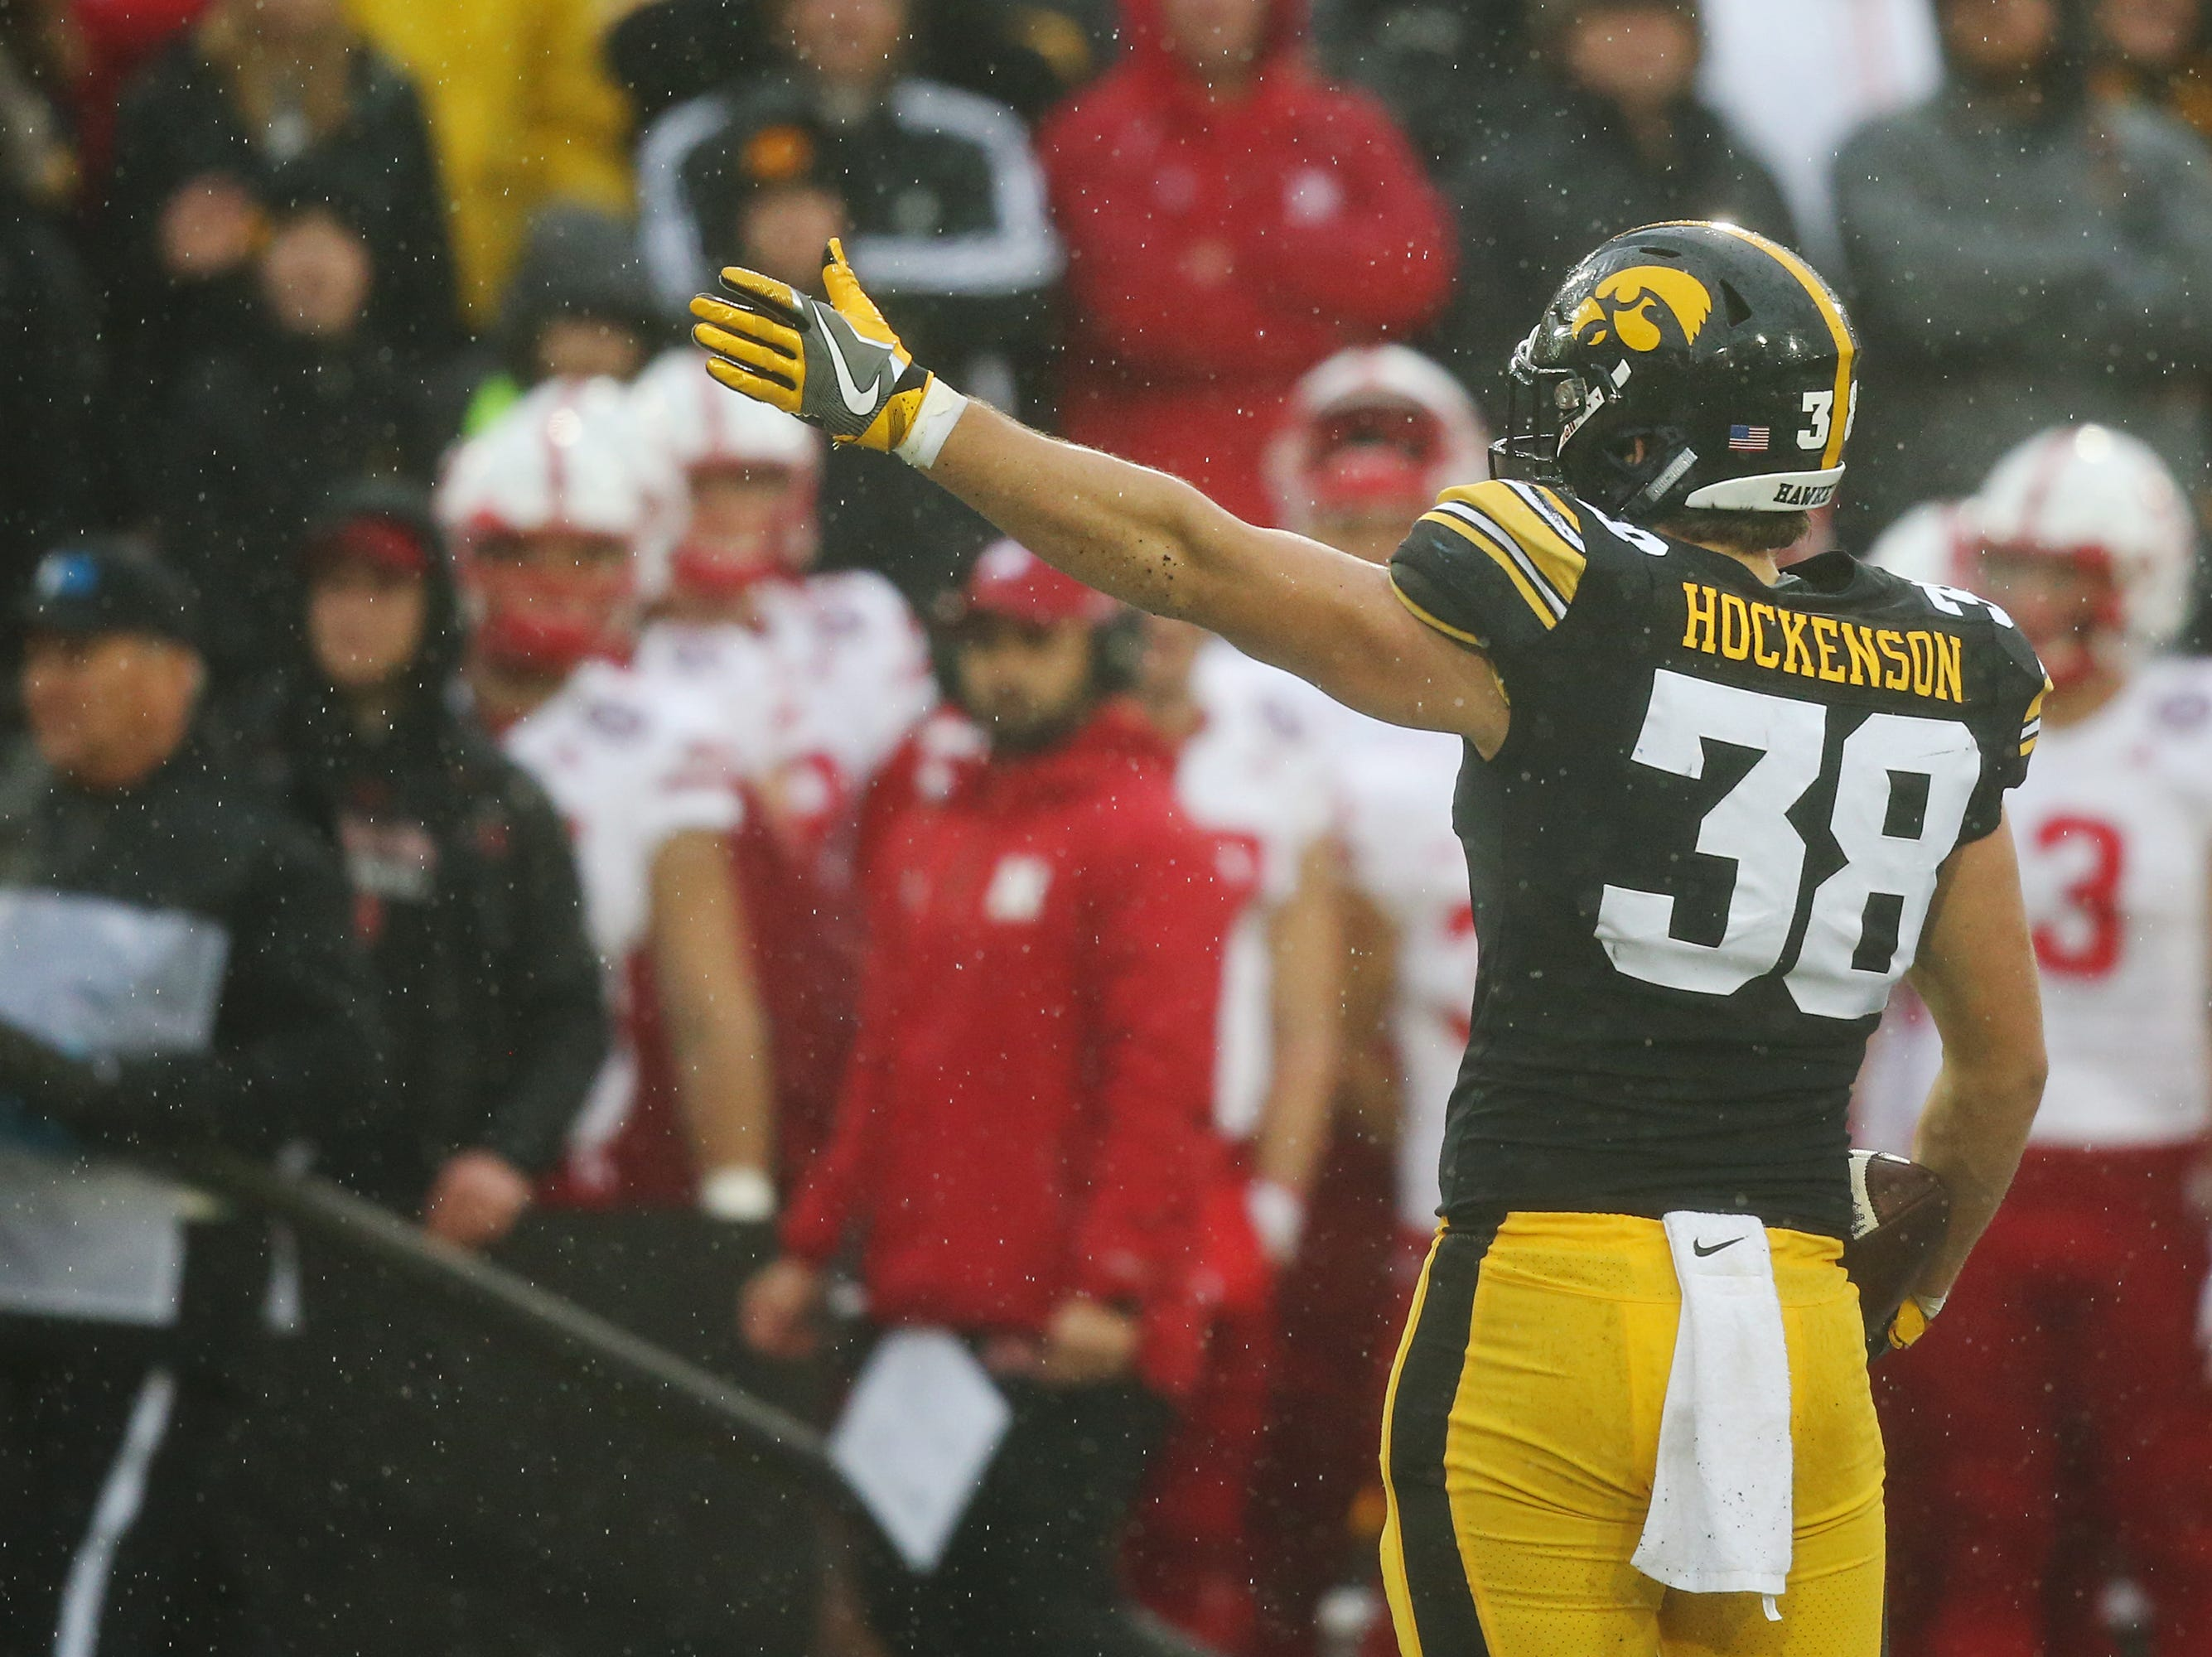 Iowa's T.J. Hockenson celebrates after catching a first down pass during the senior day match-up between the Iowa Hawkeyes and the Nebraska Cornhuskers on Friday, Nov. 23, 2018, at Kinnick Stadium, in Iowa City.